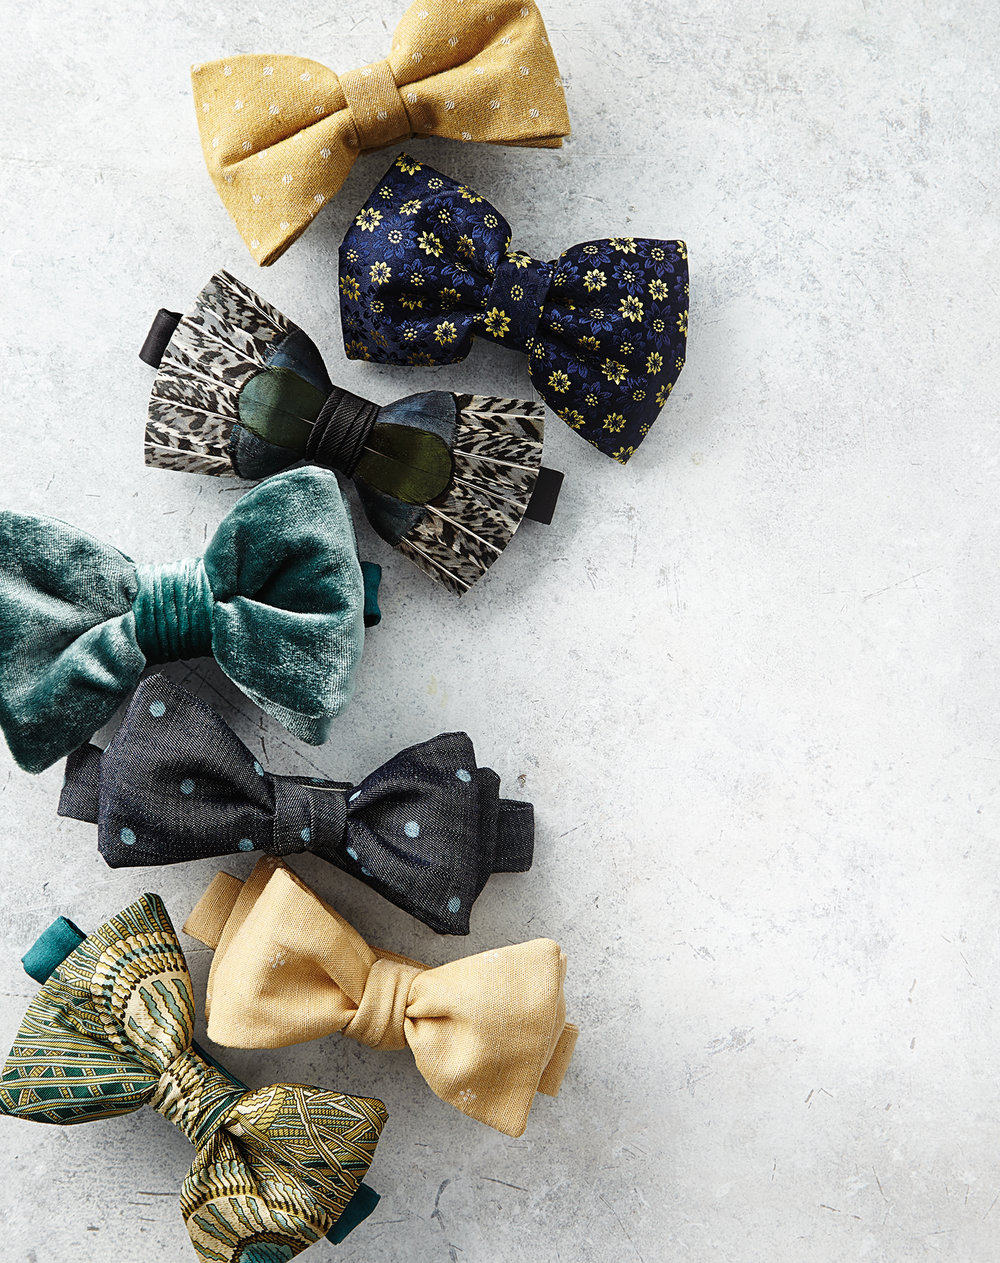 LWT_0617_NeedfulThings_Bowties_02_5307-layers_RETOUCHED-web.jpg